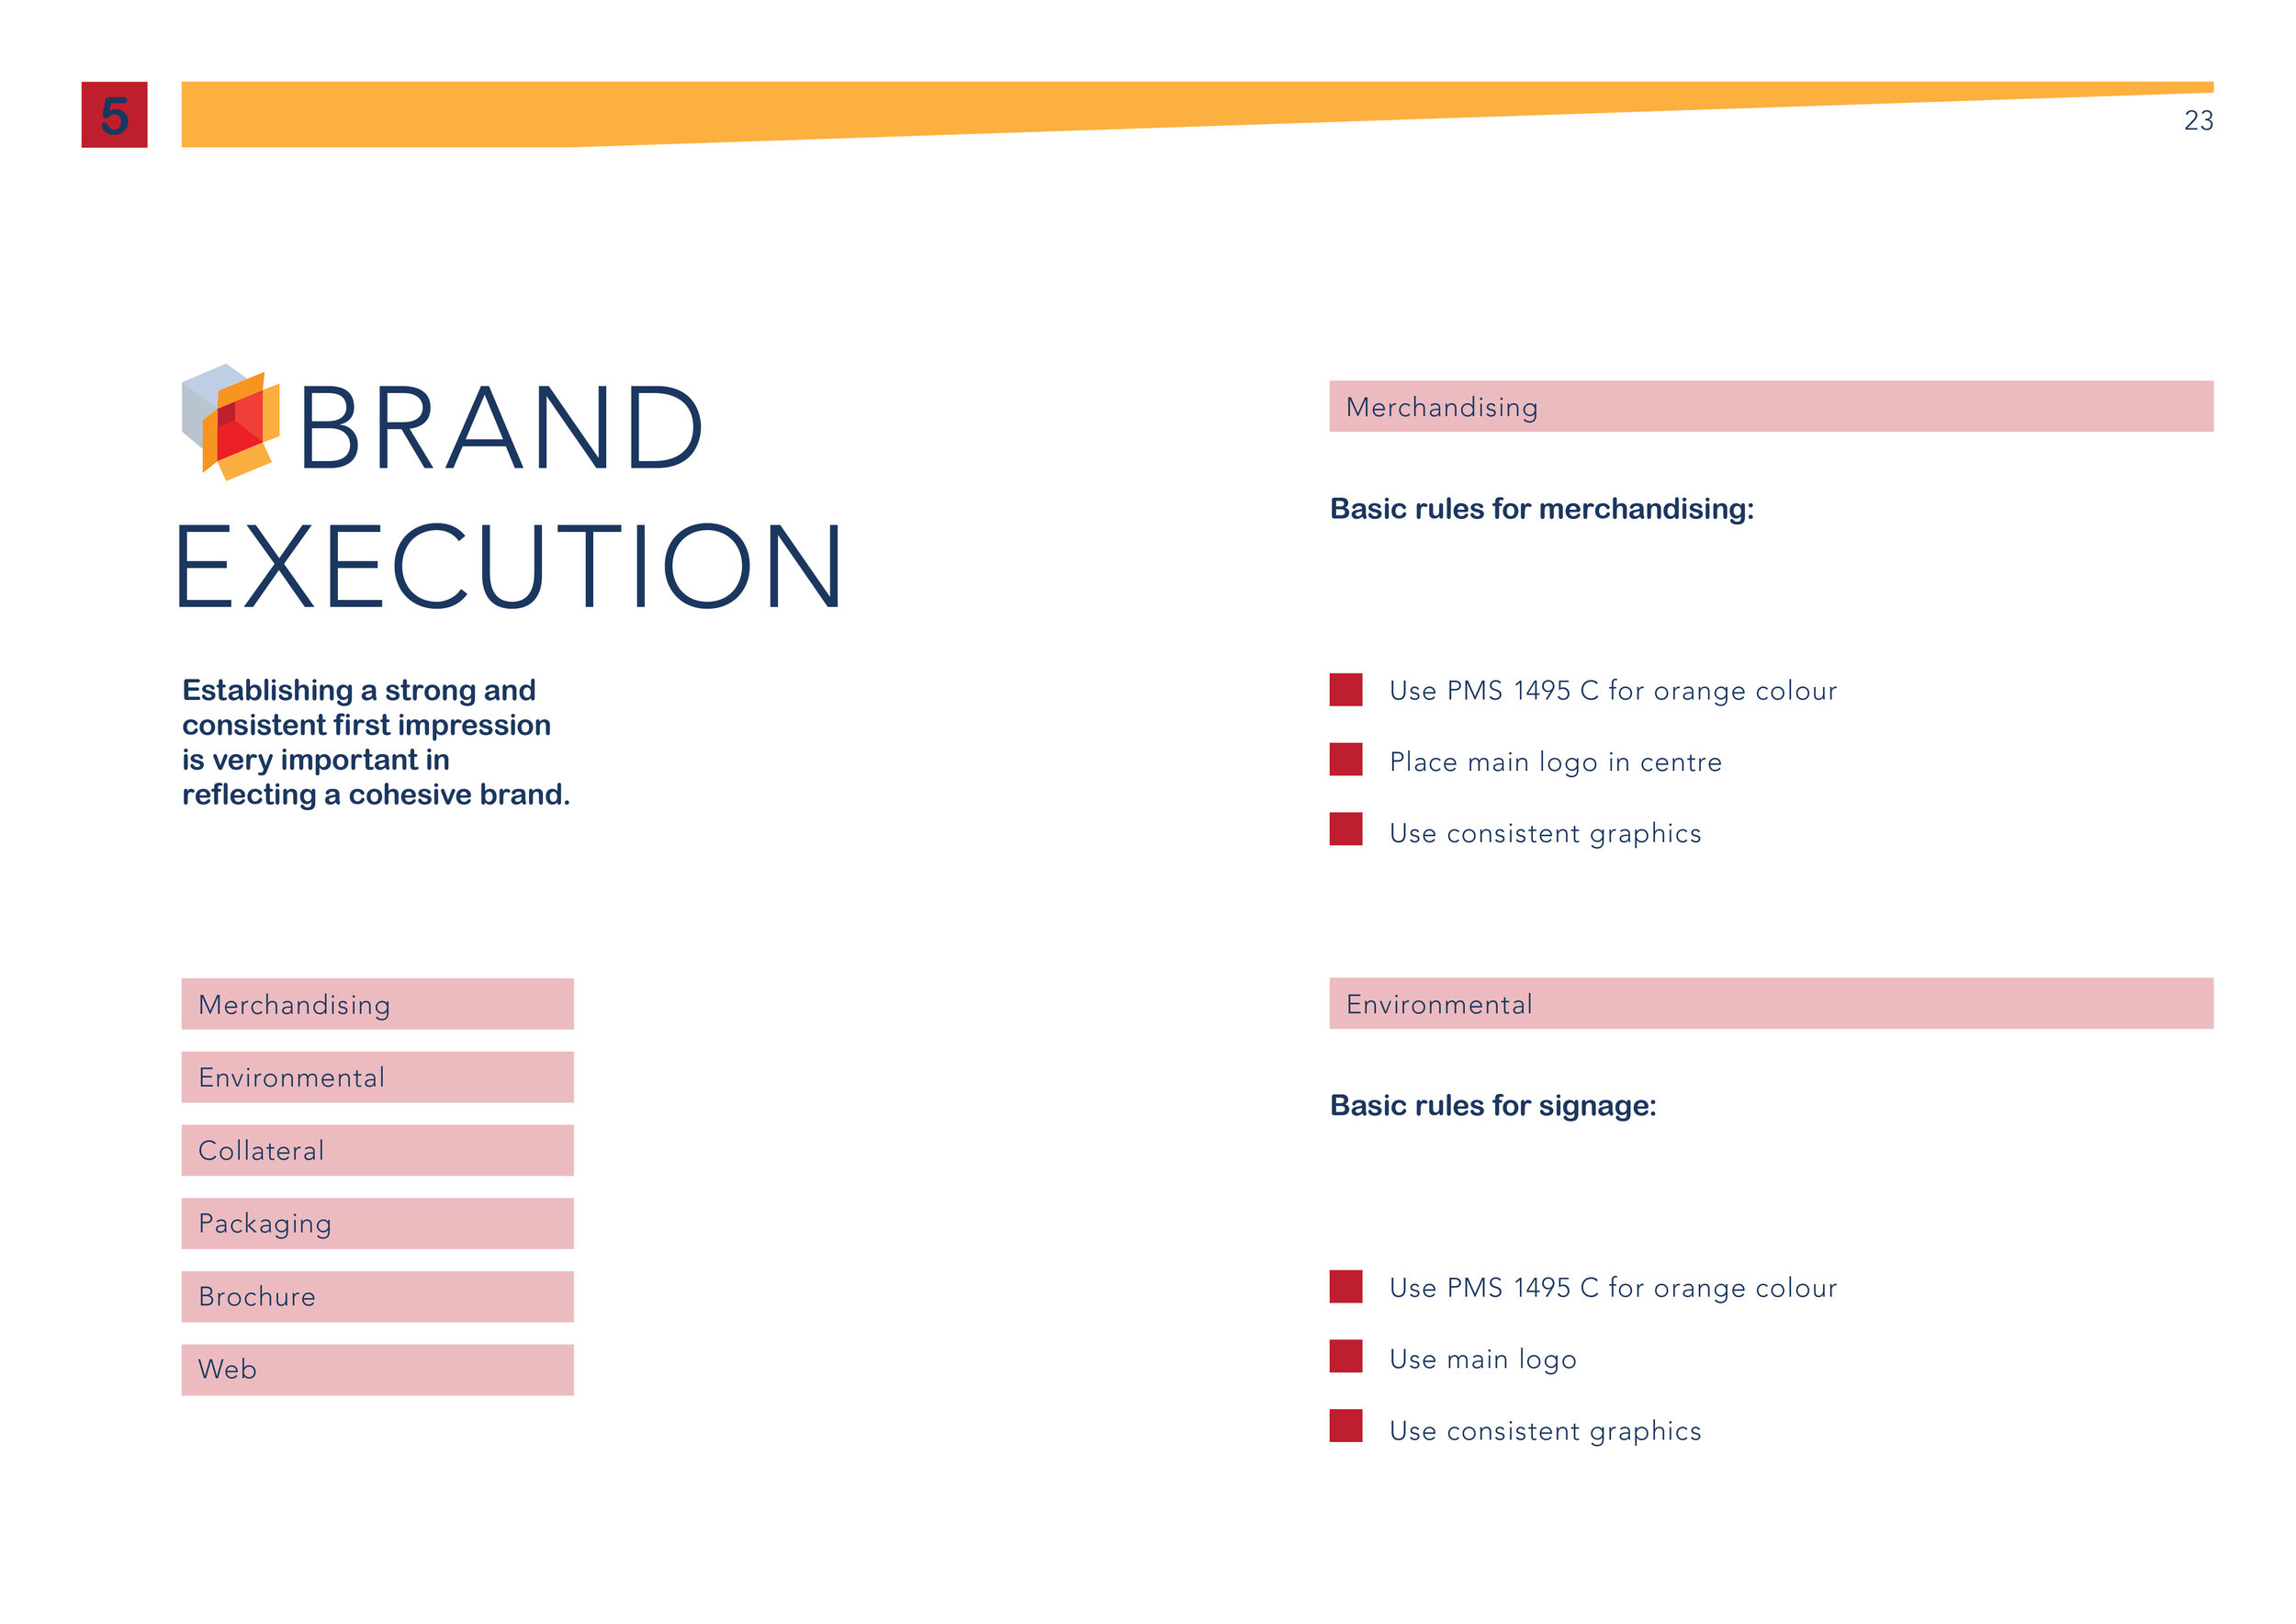 Unbox-it Brand Guidelines12.jpg